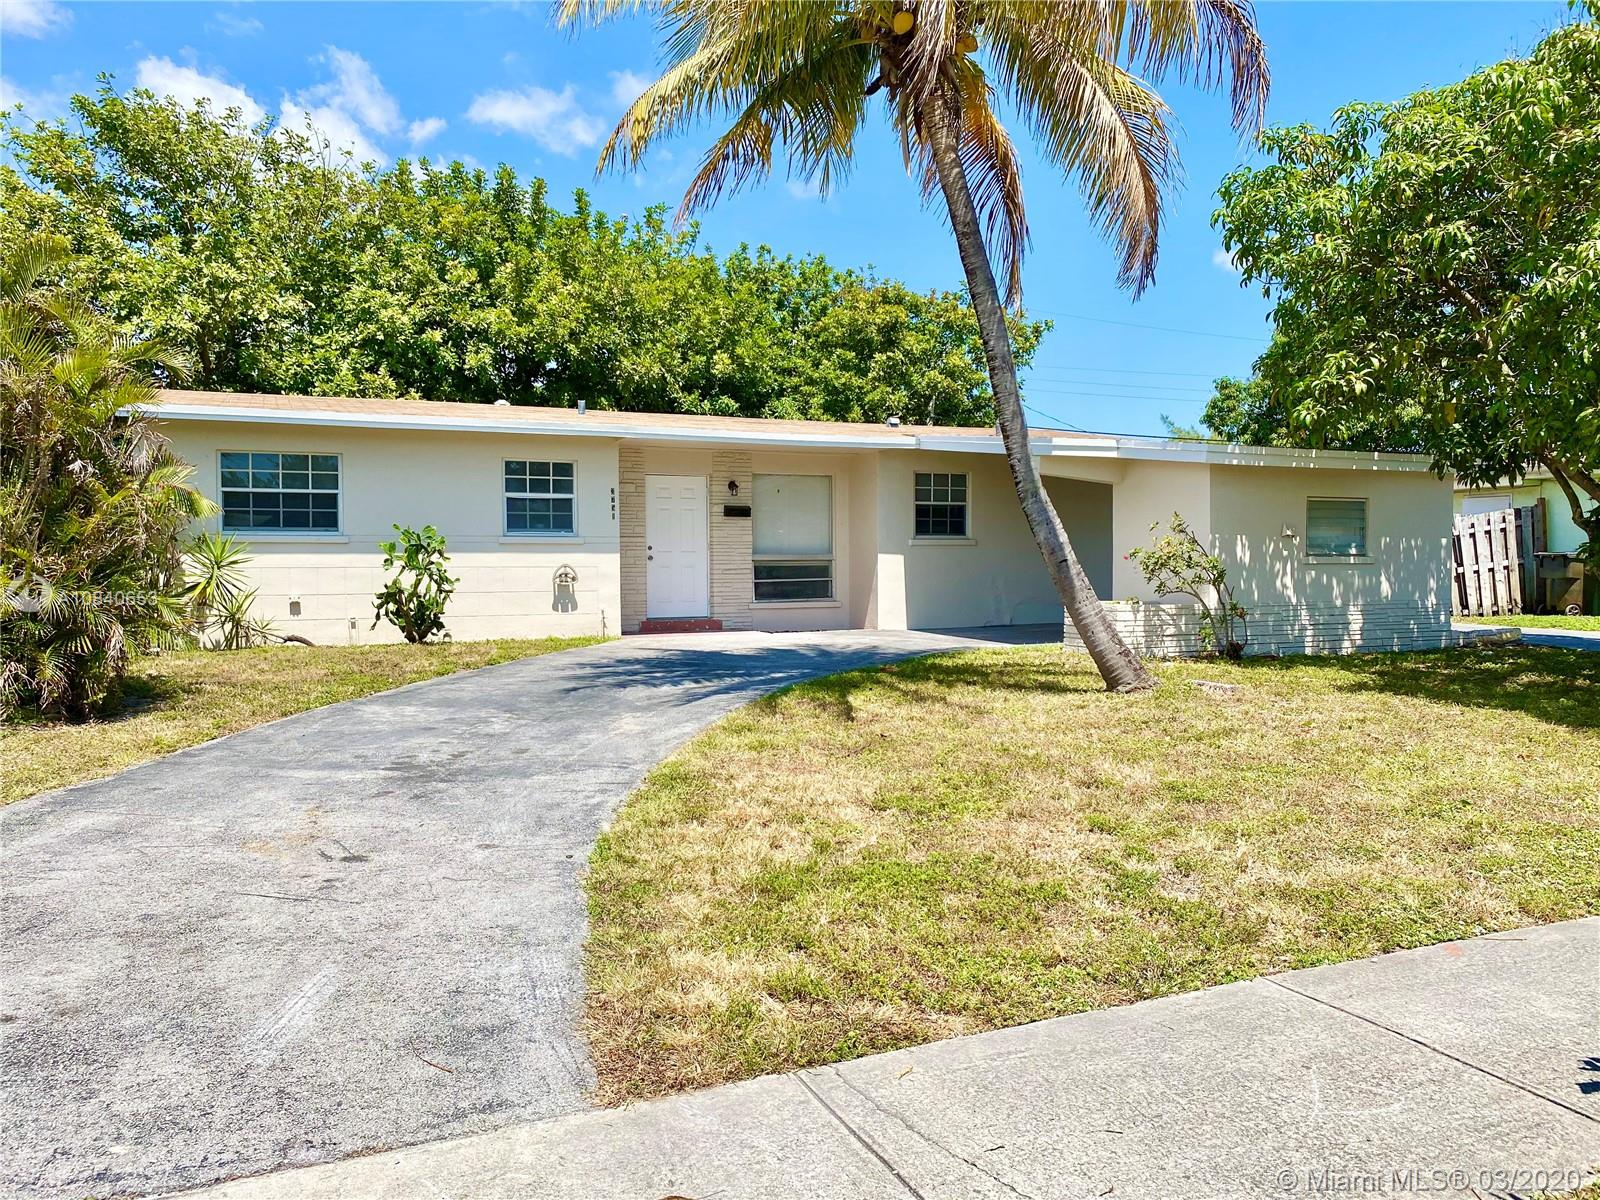 Bring your toothbrush and move right in! This spacious 3 bedroom 1 bathroom home has everything a homeowner dreams of! This single family home is fully equipped with all new renovations. New owners will enjoy new flooring throughout, a new modern luxury kitchen with brand new appliances and a completely renovated bathroom with amazing modern finishes. With this home's large gated backyard and plenty of parking, your guest may never want to leave. The price is right, so submit your offer! You wont find a better deal!